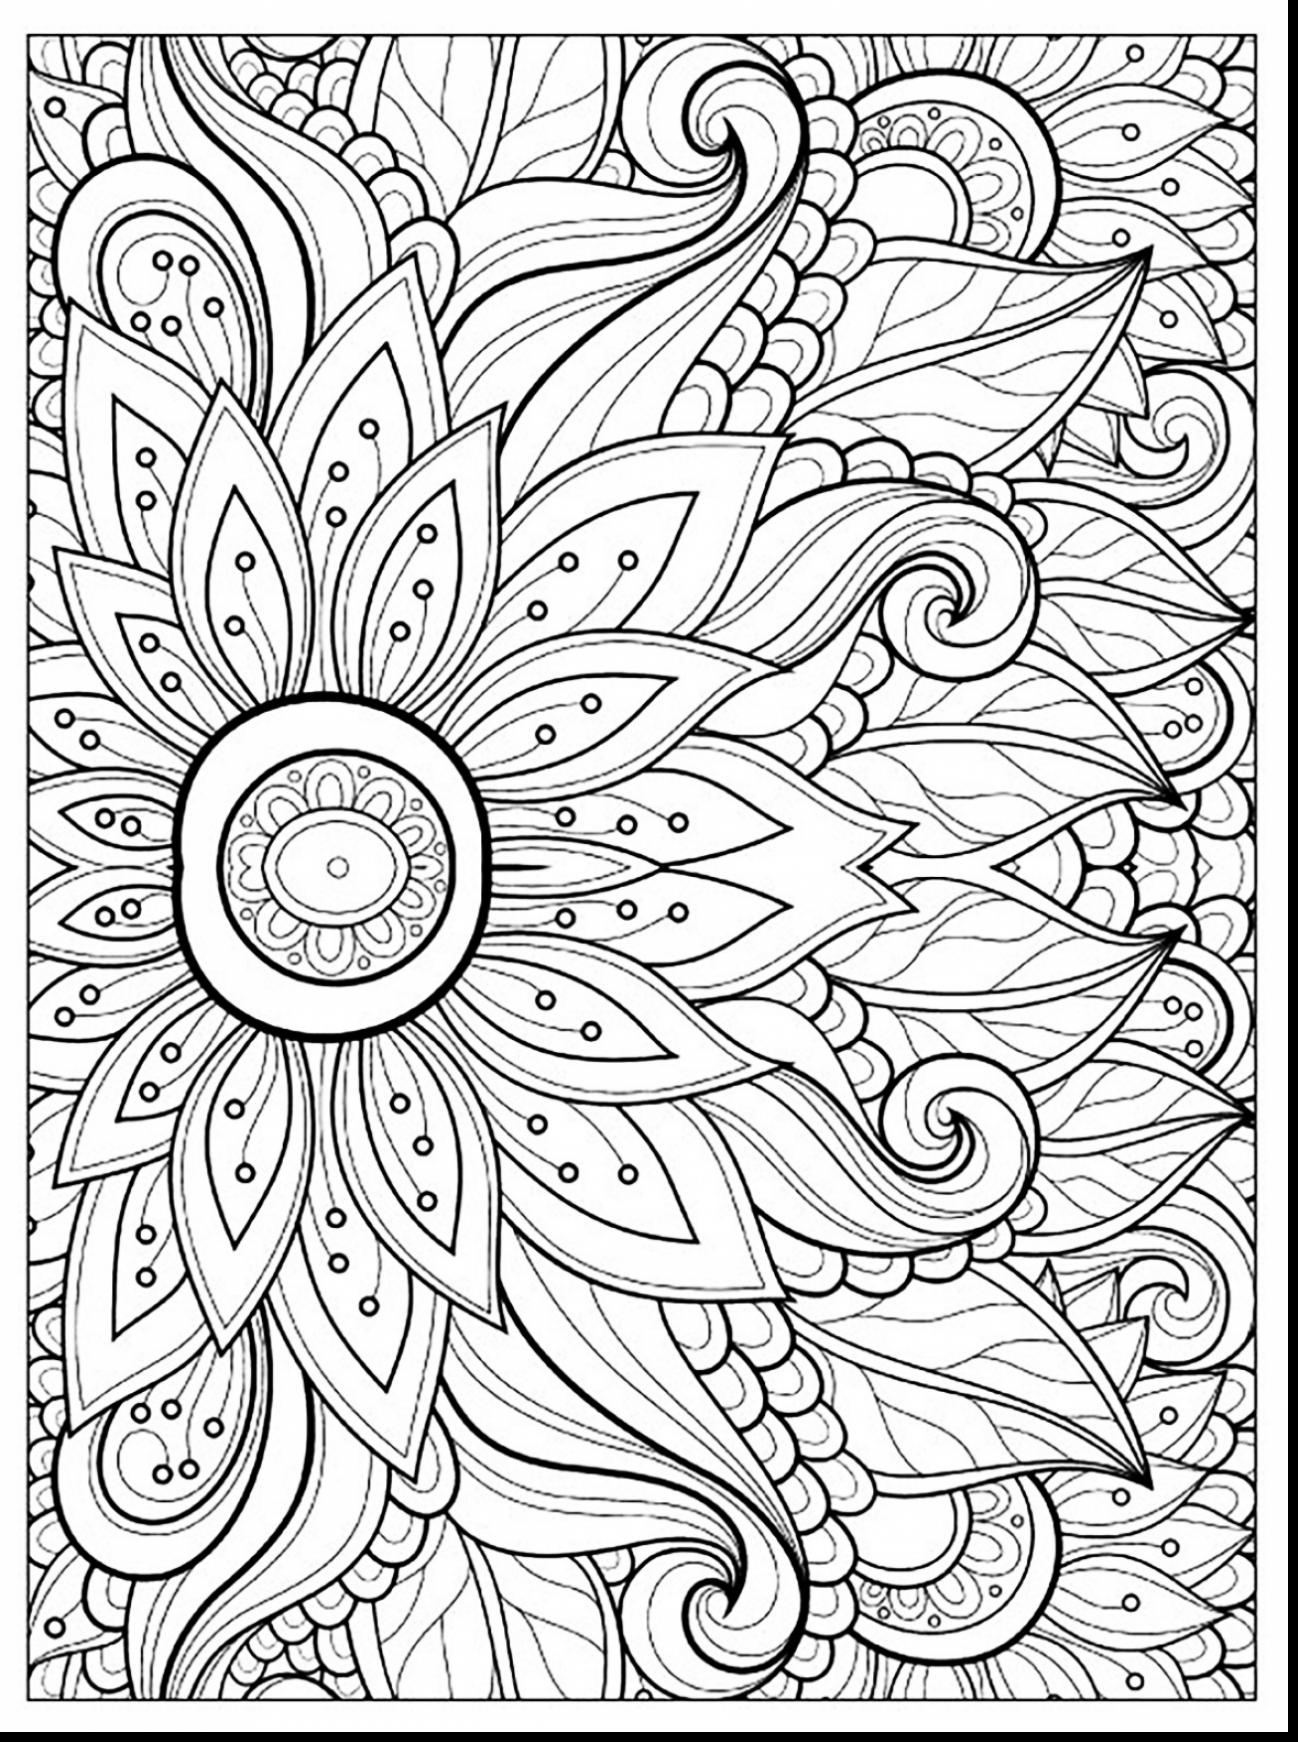 Adult Free Coloring Pages Flower Coloring Pages For Adults Unique Flower  Coloring Pages Adults - birijus.com